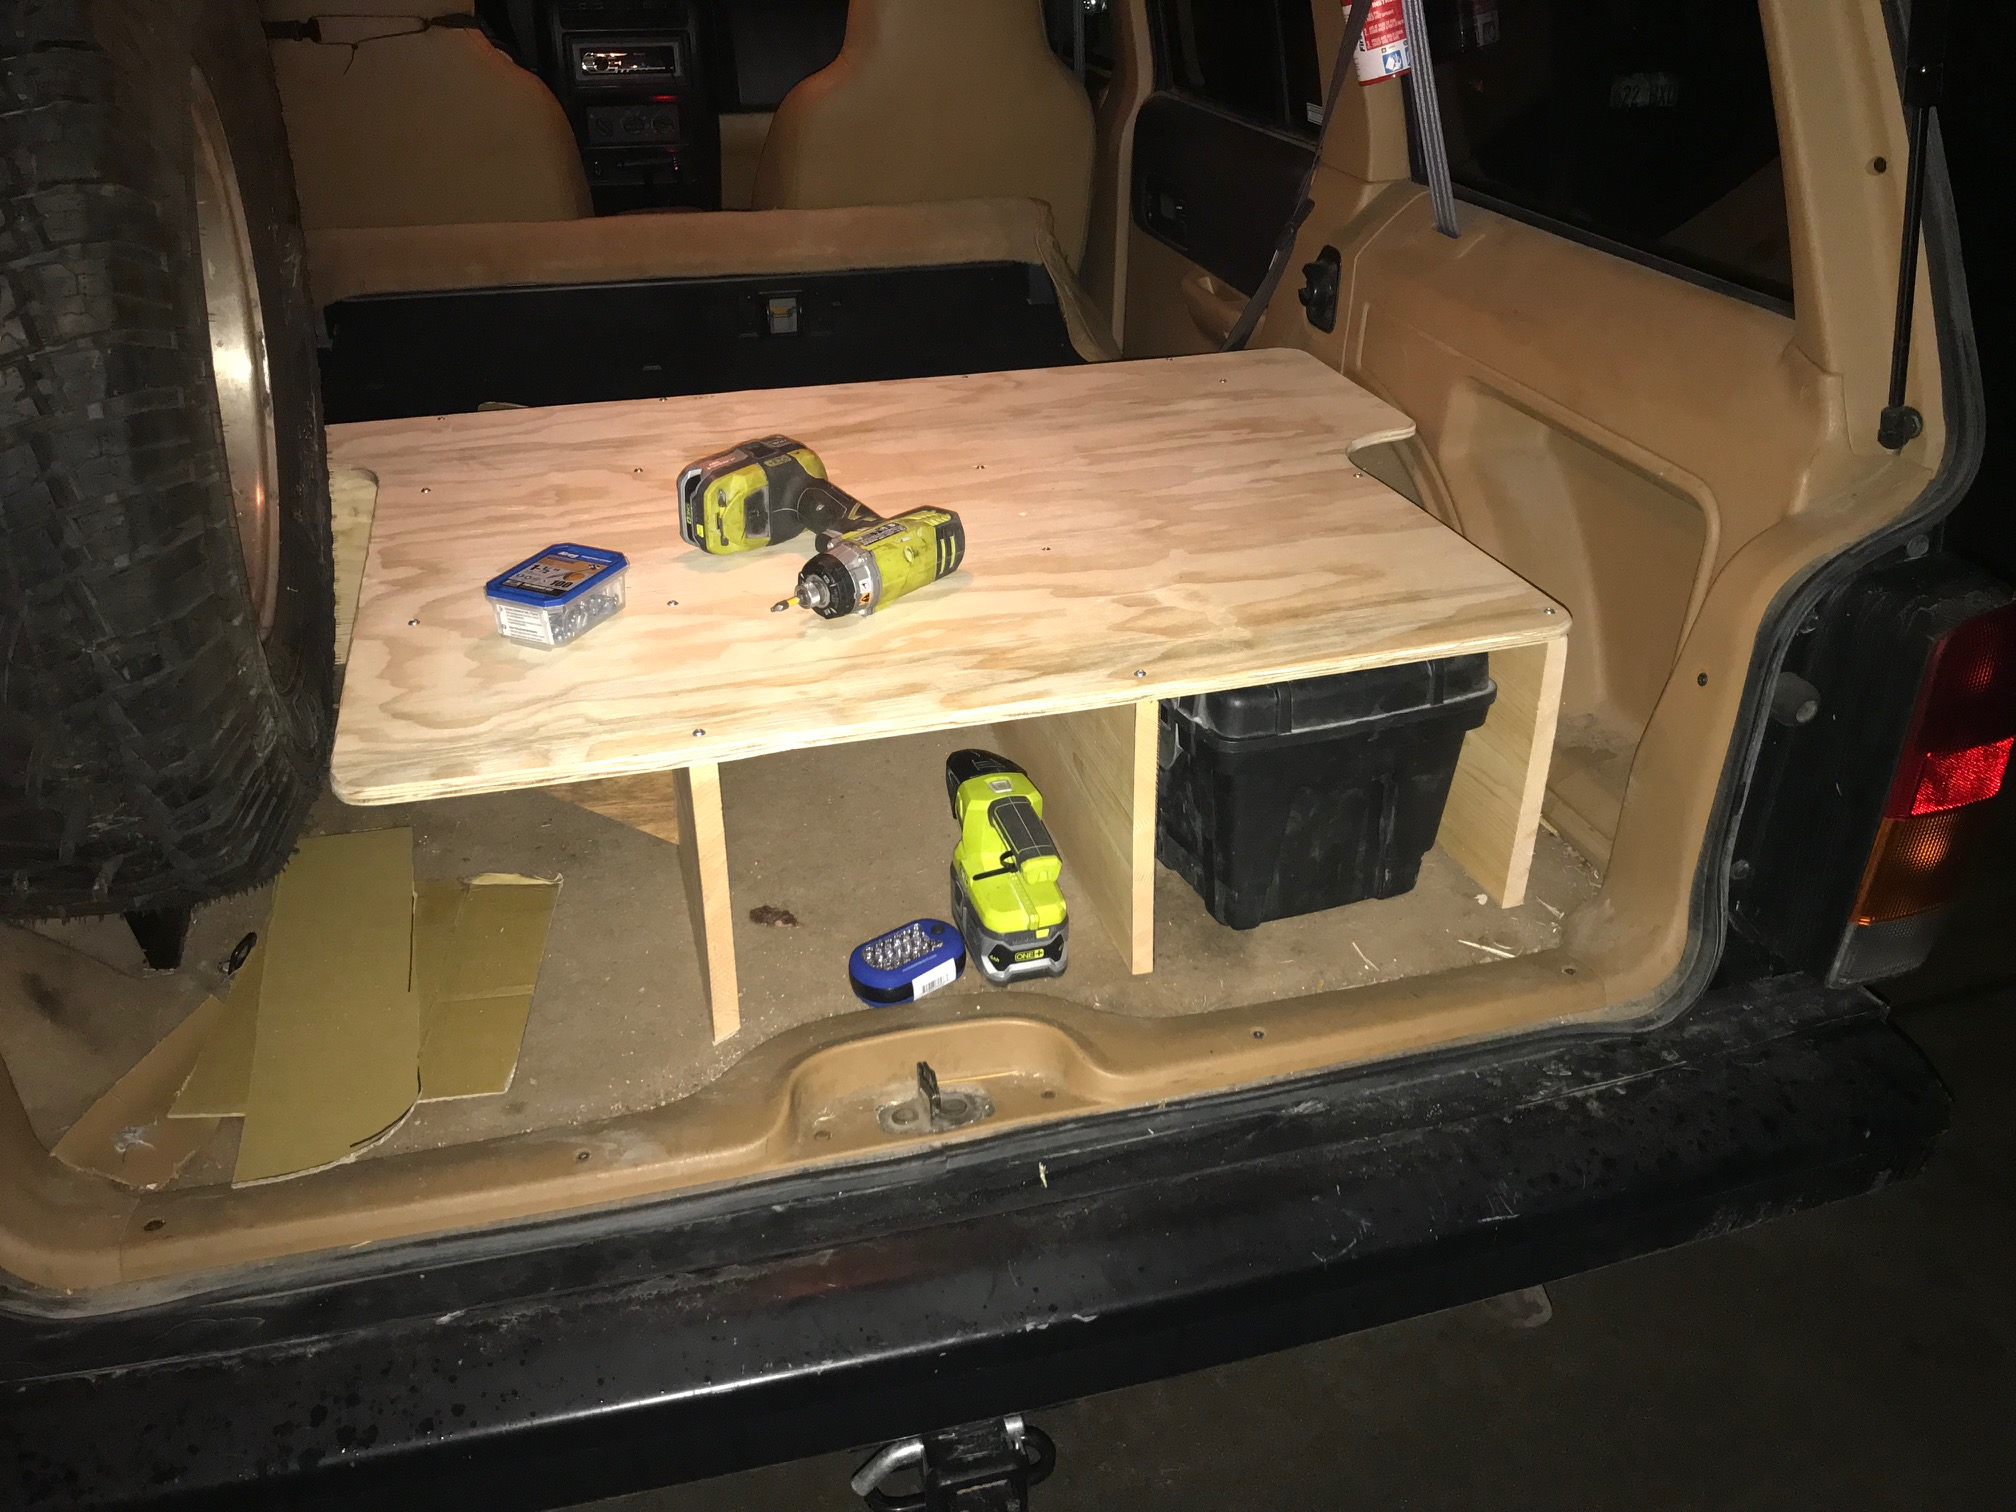 One Day Build Stow And Go Storage System Cargo Platform For My Jeep Cherokee Overland Rig Dan Nix